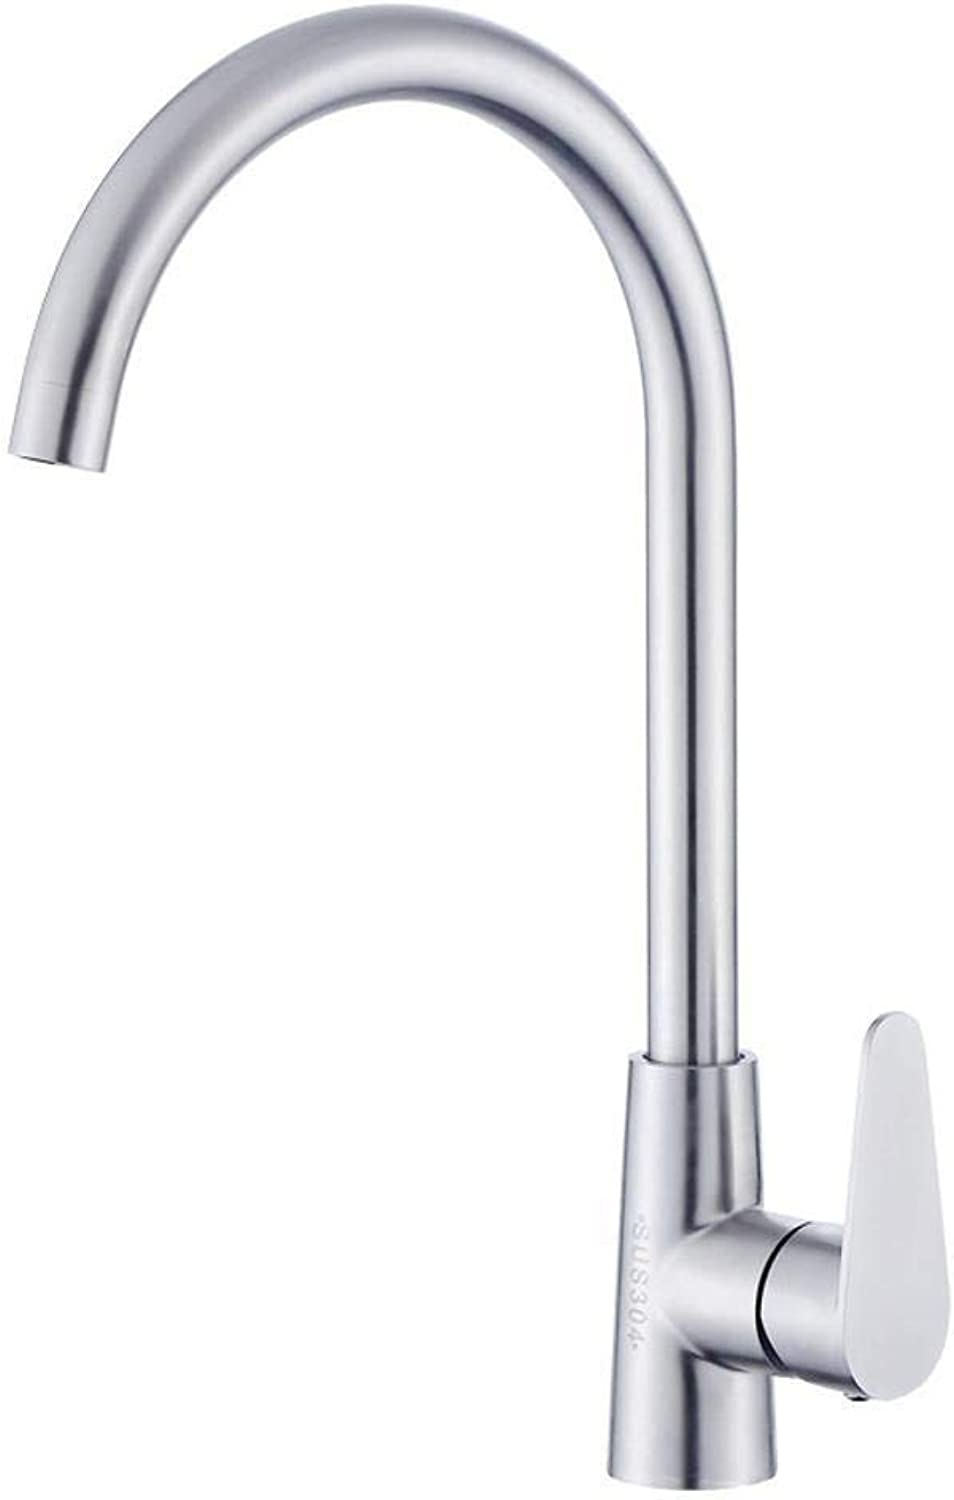 Qpw Stainless Steel Kitchen Sink wash Vegetable Basin hot and Cold Mixer Faucet 1.3KG